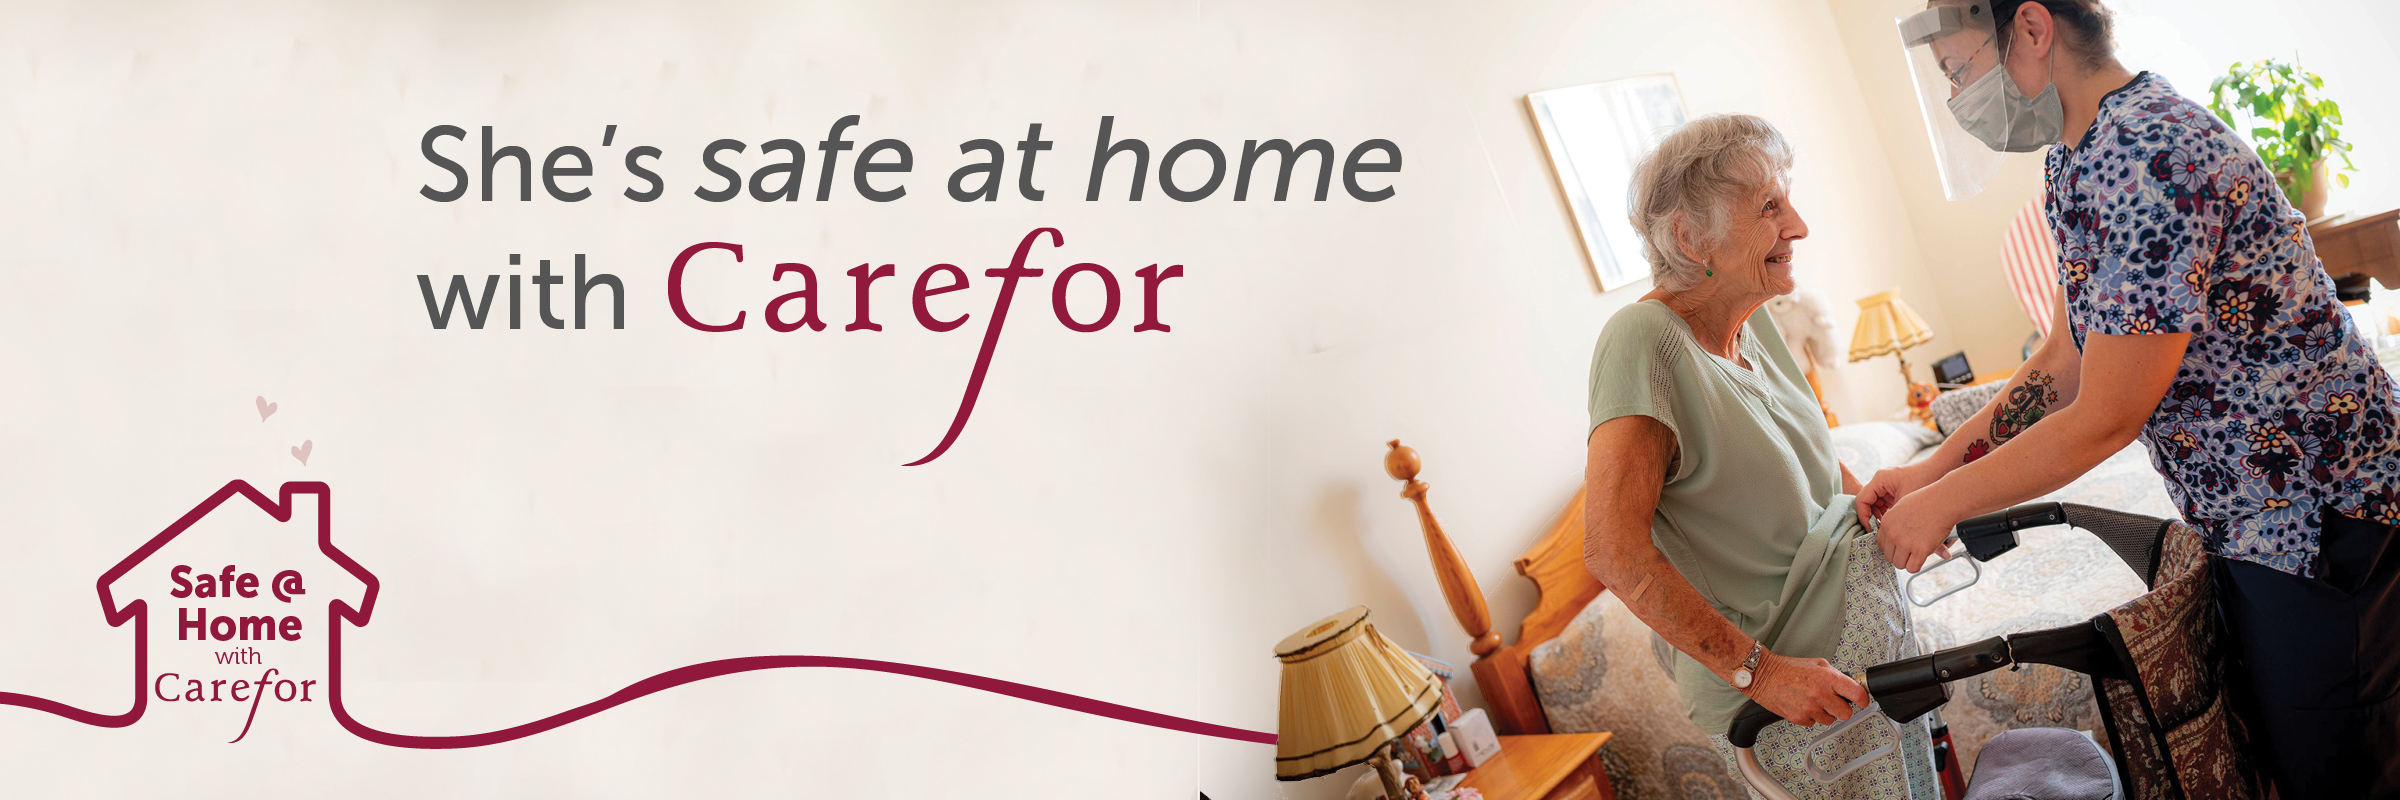 Carefor has been keeping people safe at home since 1897.